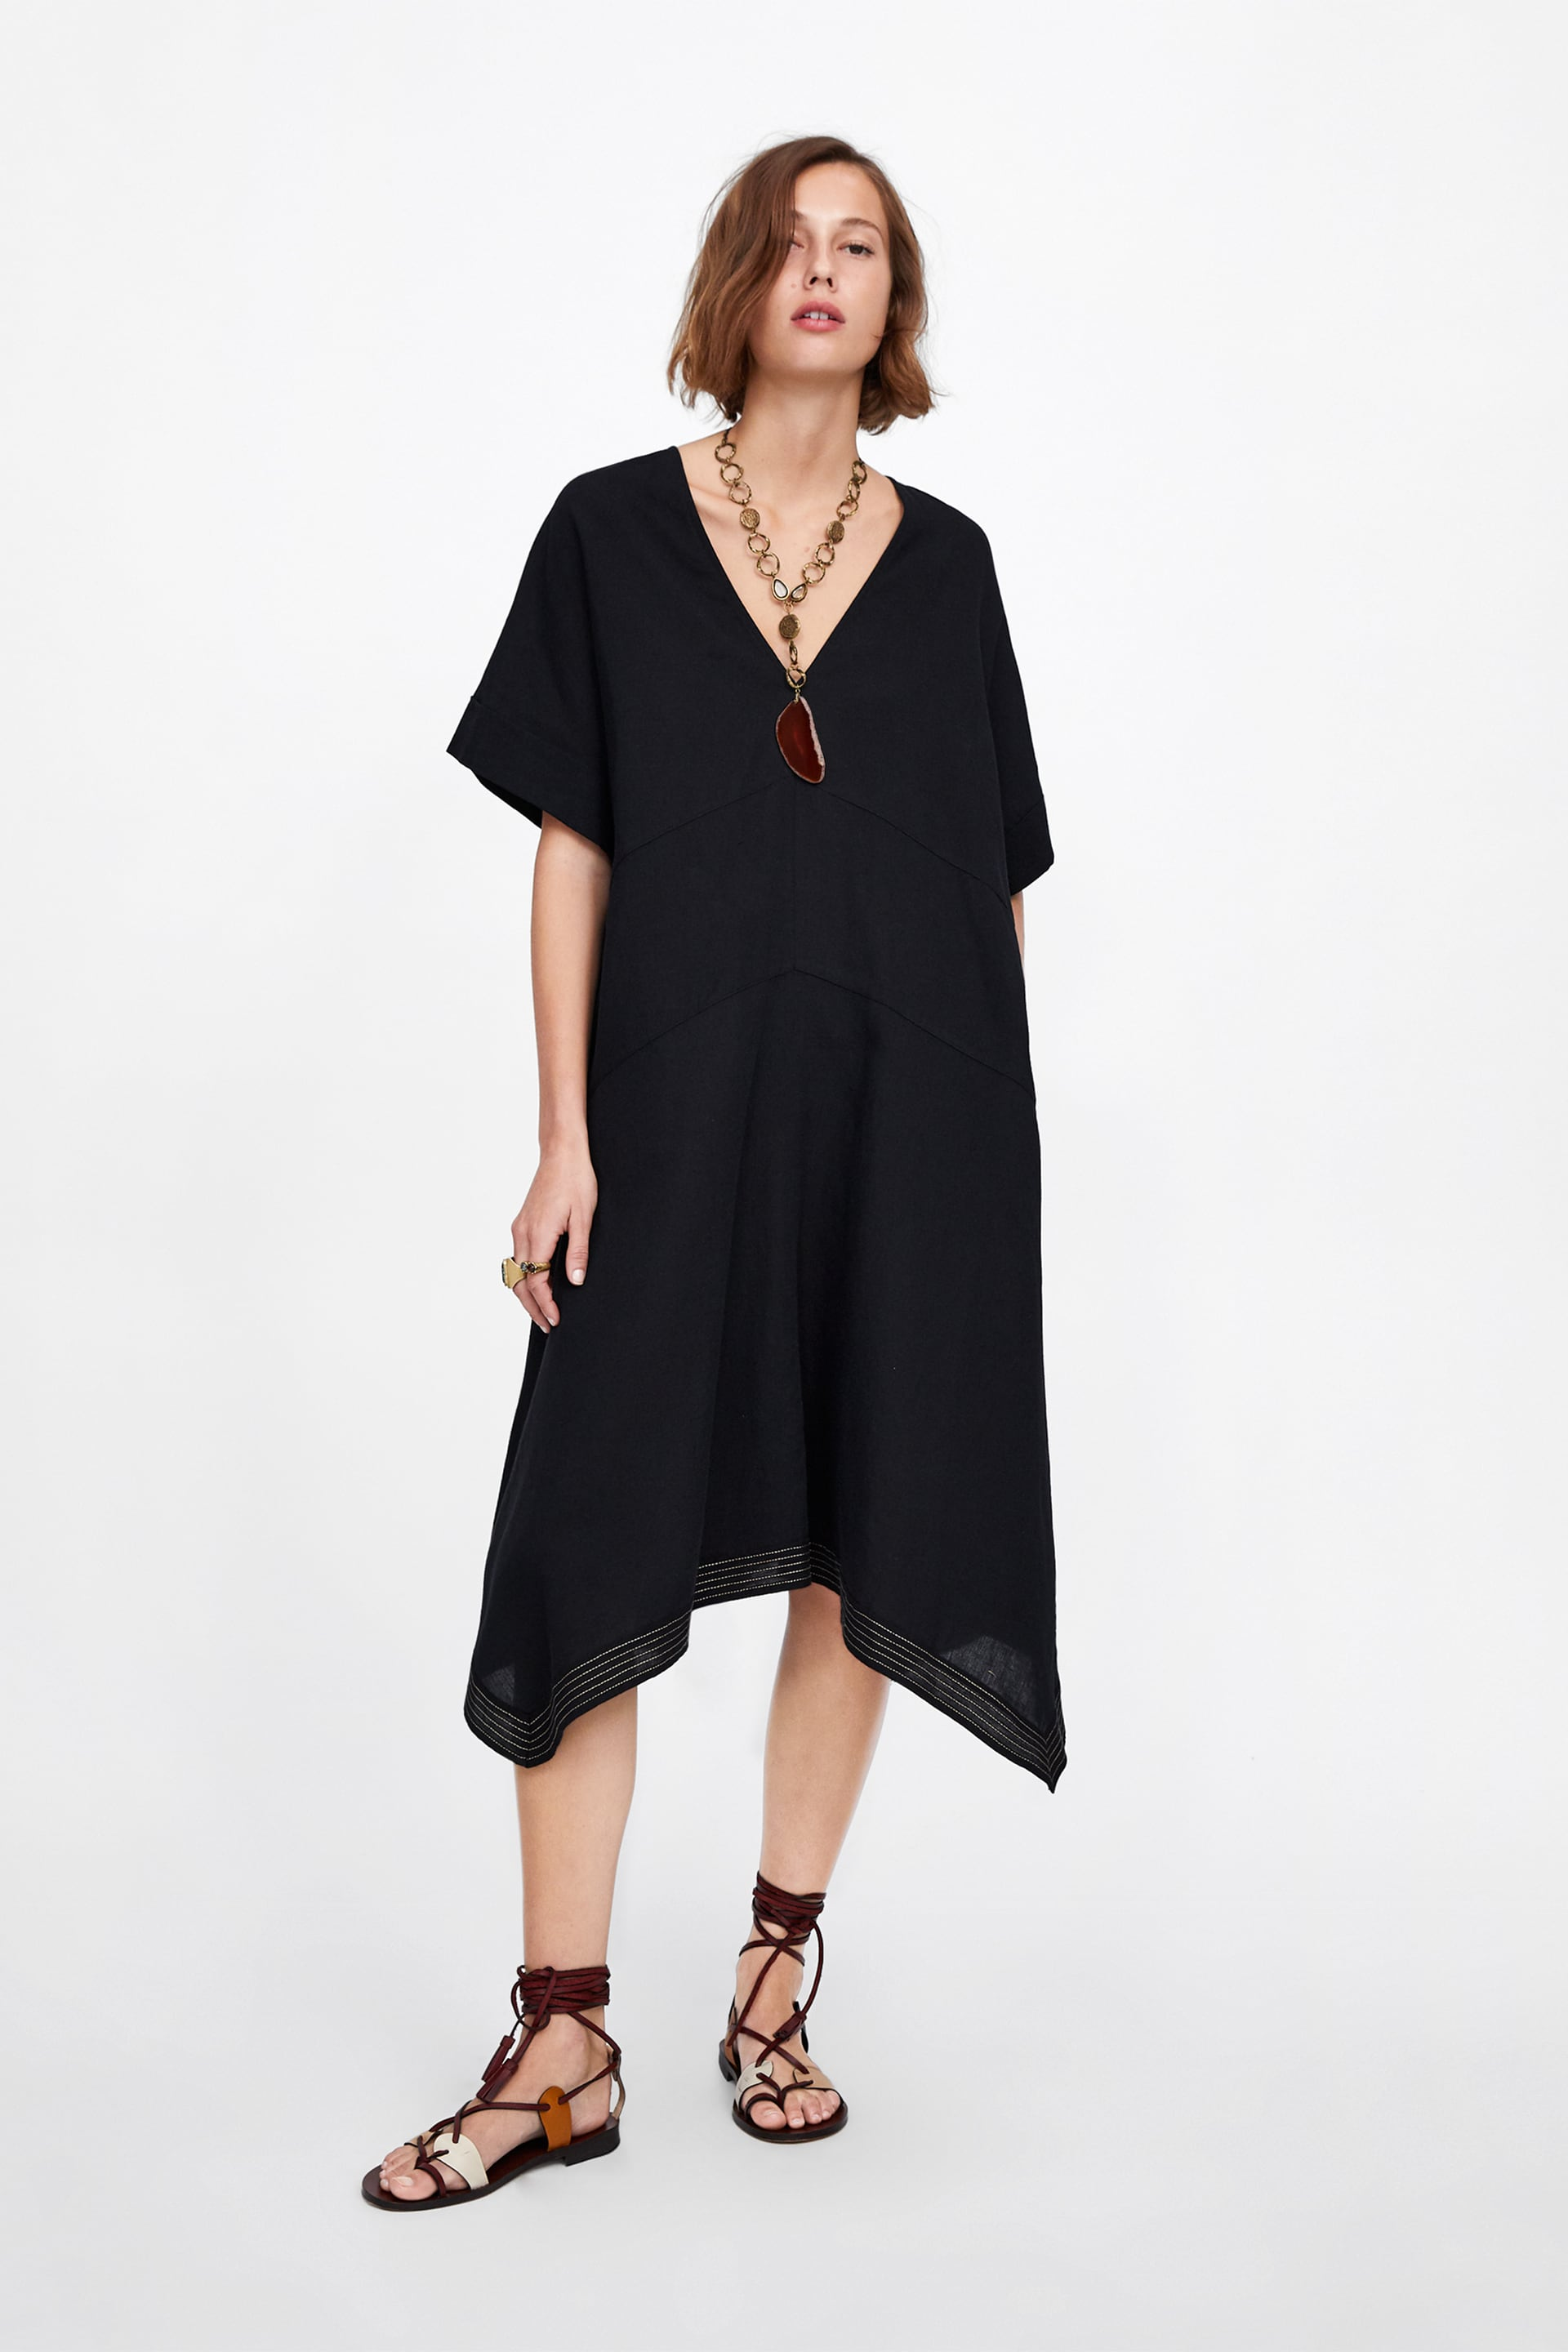 fec3791f20 Image 1 of OVERSIZED DRESS WITH CONTRASTING PIPING from Zara